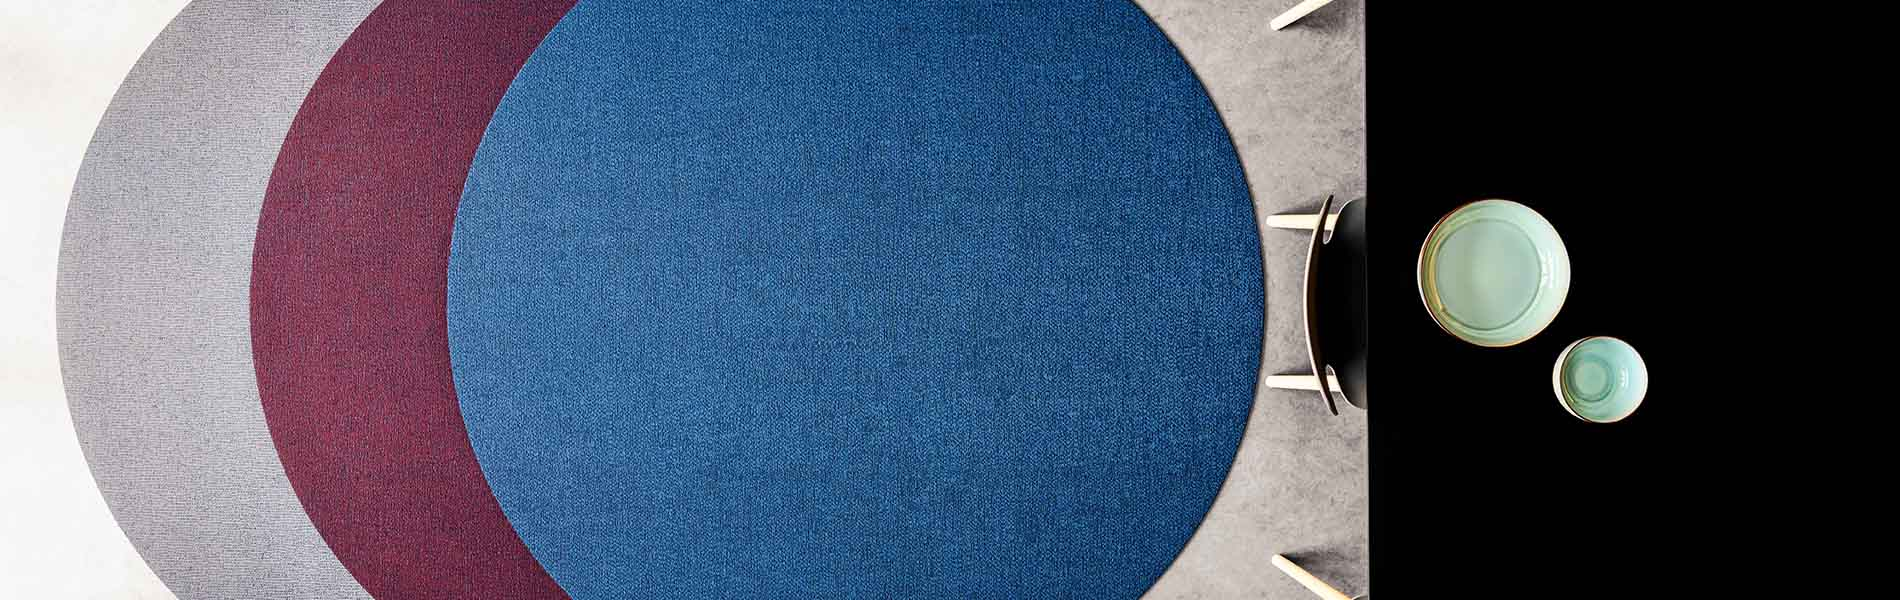 Dickson reveals its latest collection of indoor and outdoor rugs